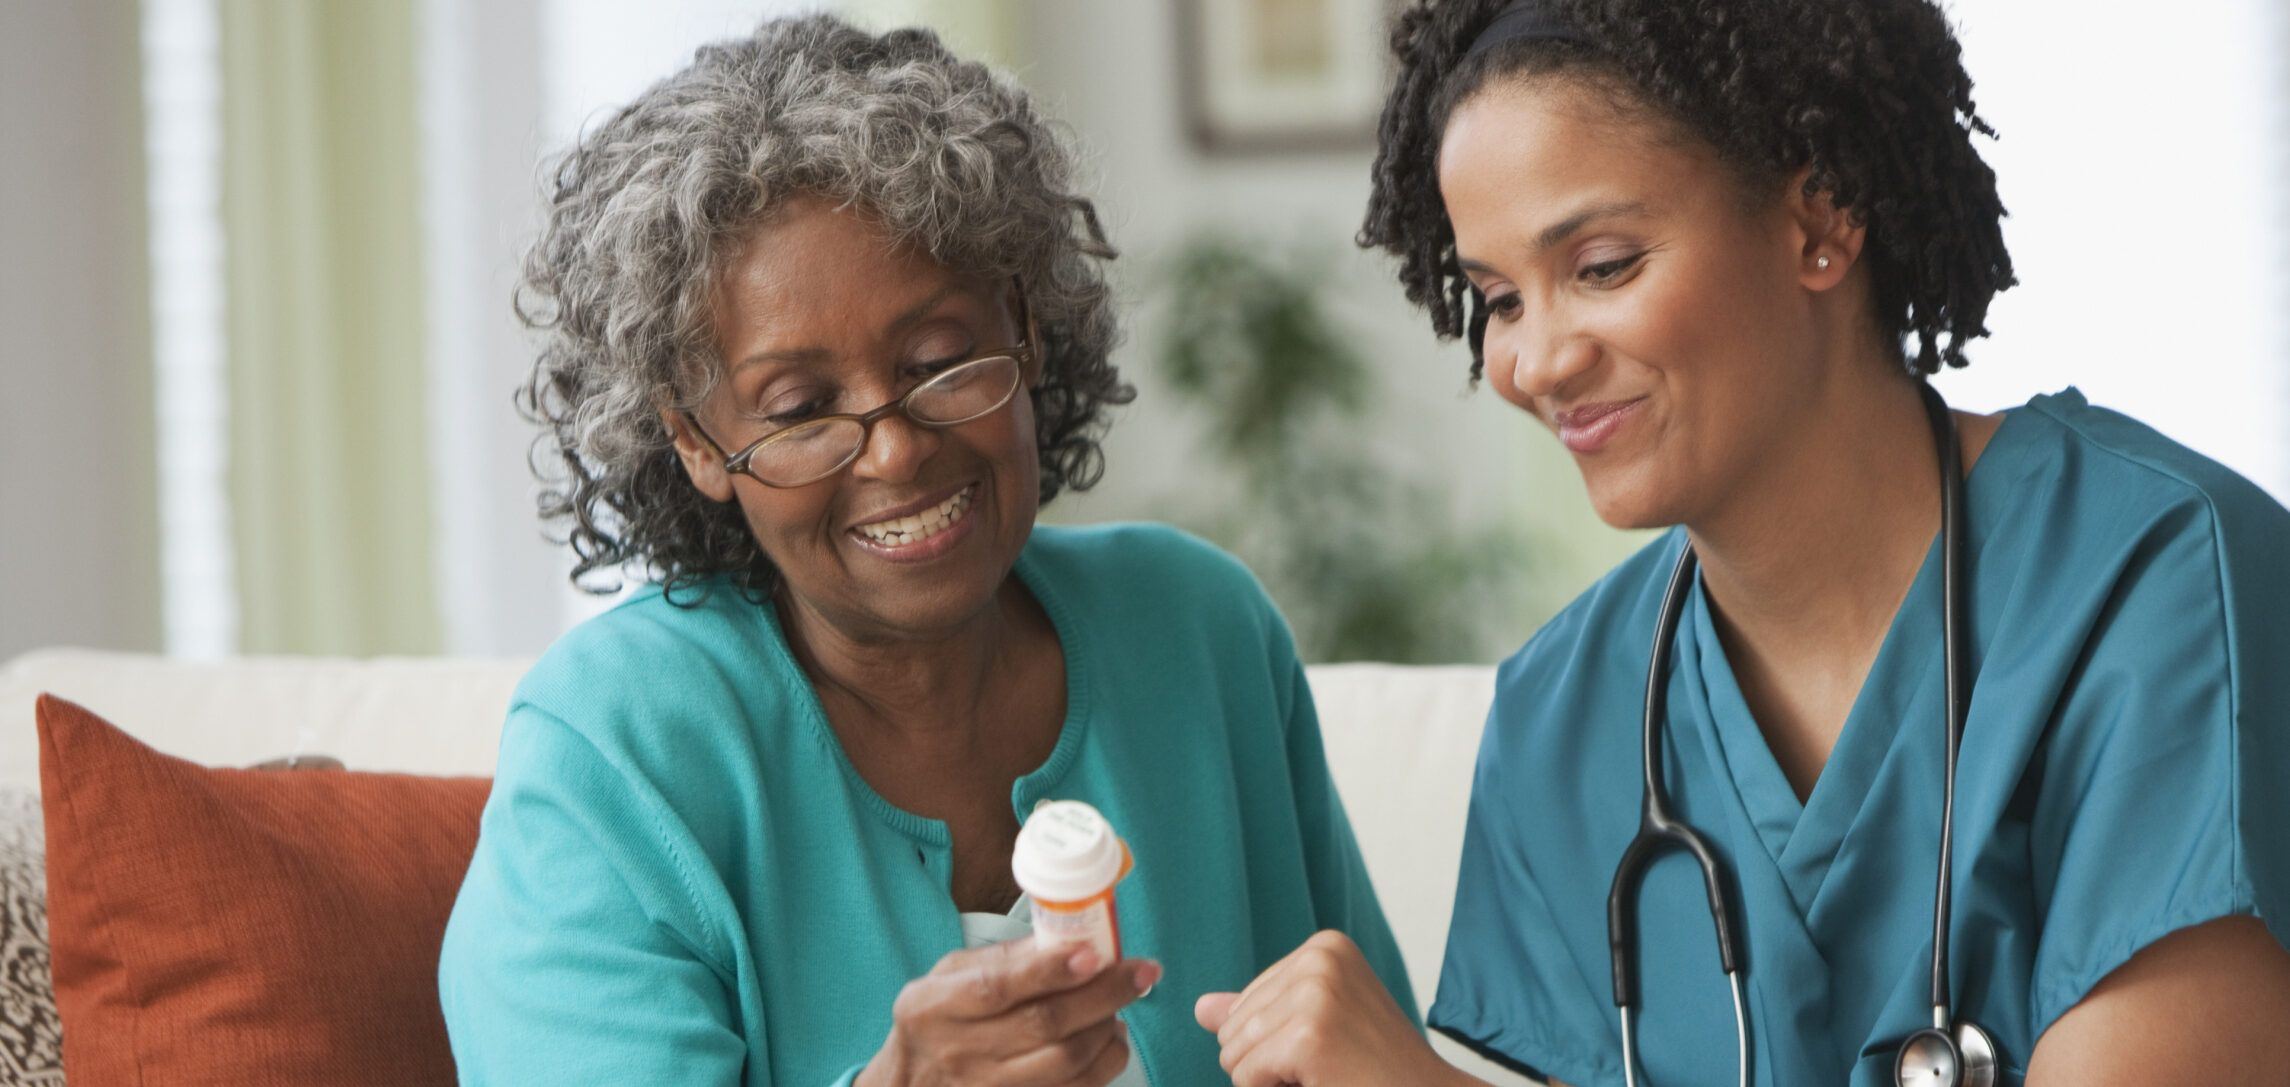 Home Health Aid going over prescription medication with older patient at home.